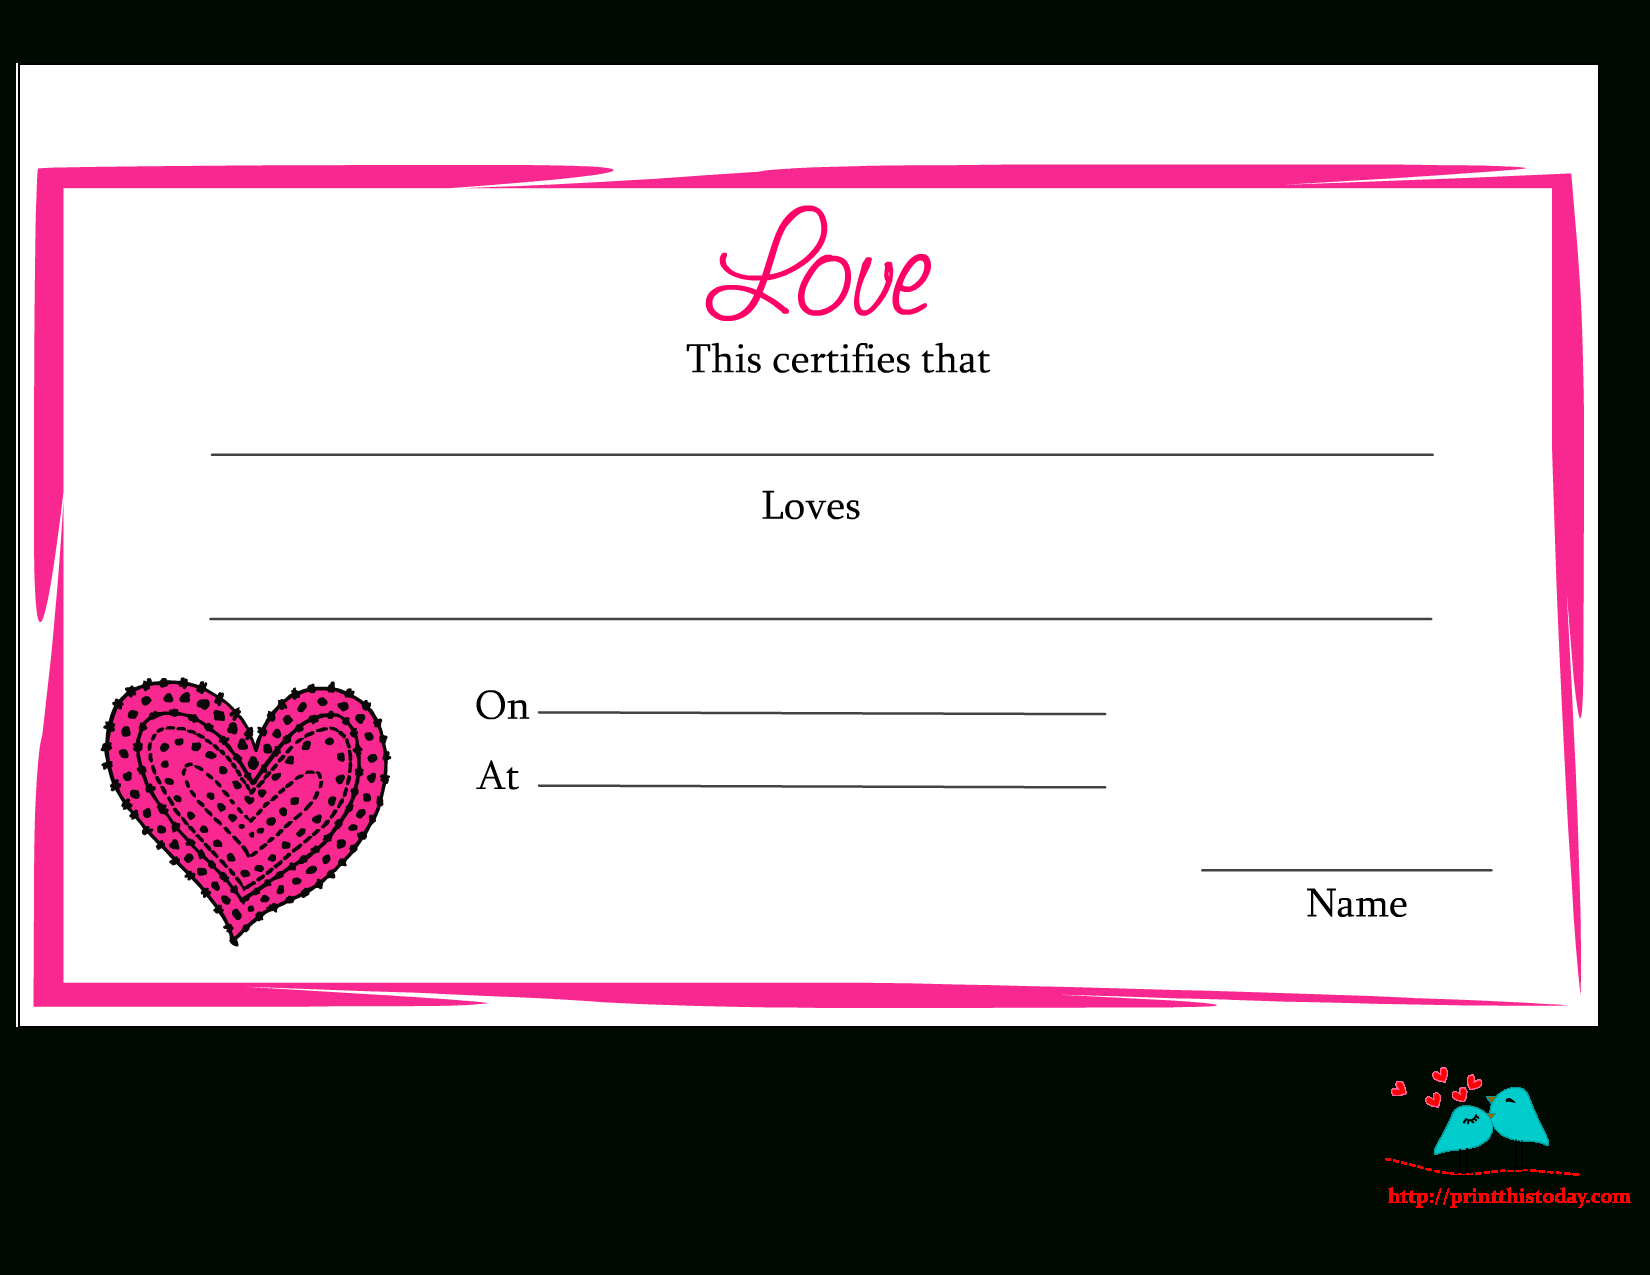 Free Printable Love Certificate   For The Holidays - Free Printable Love Certificates For Him